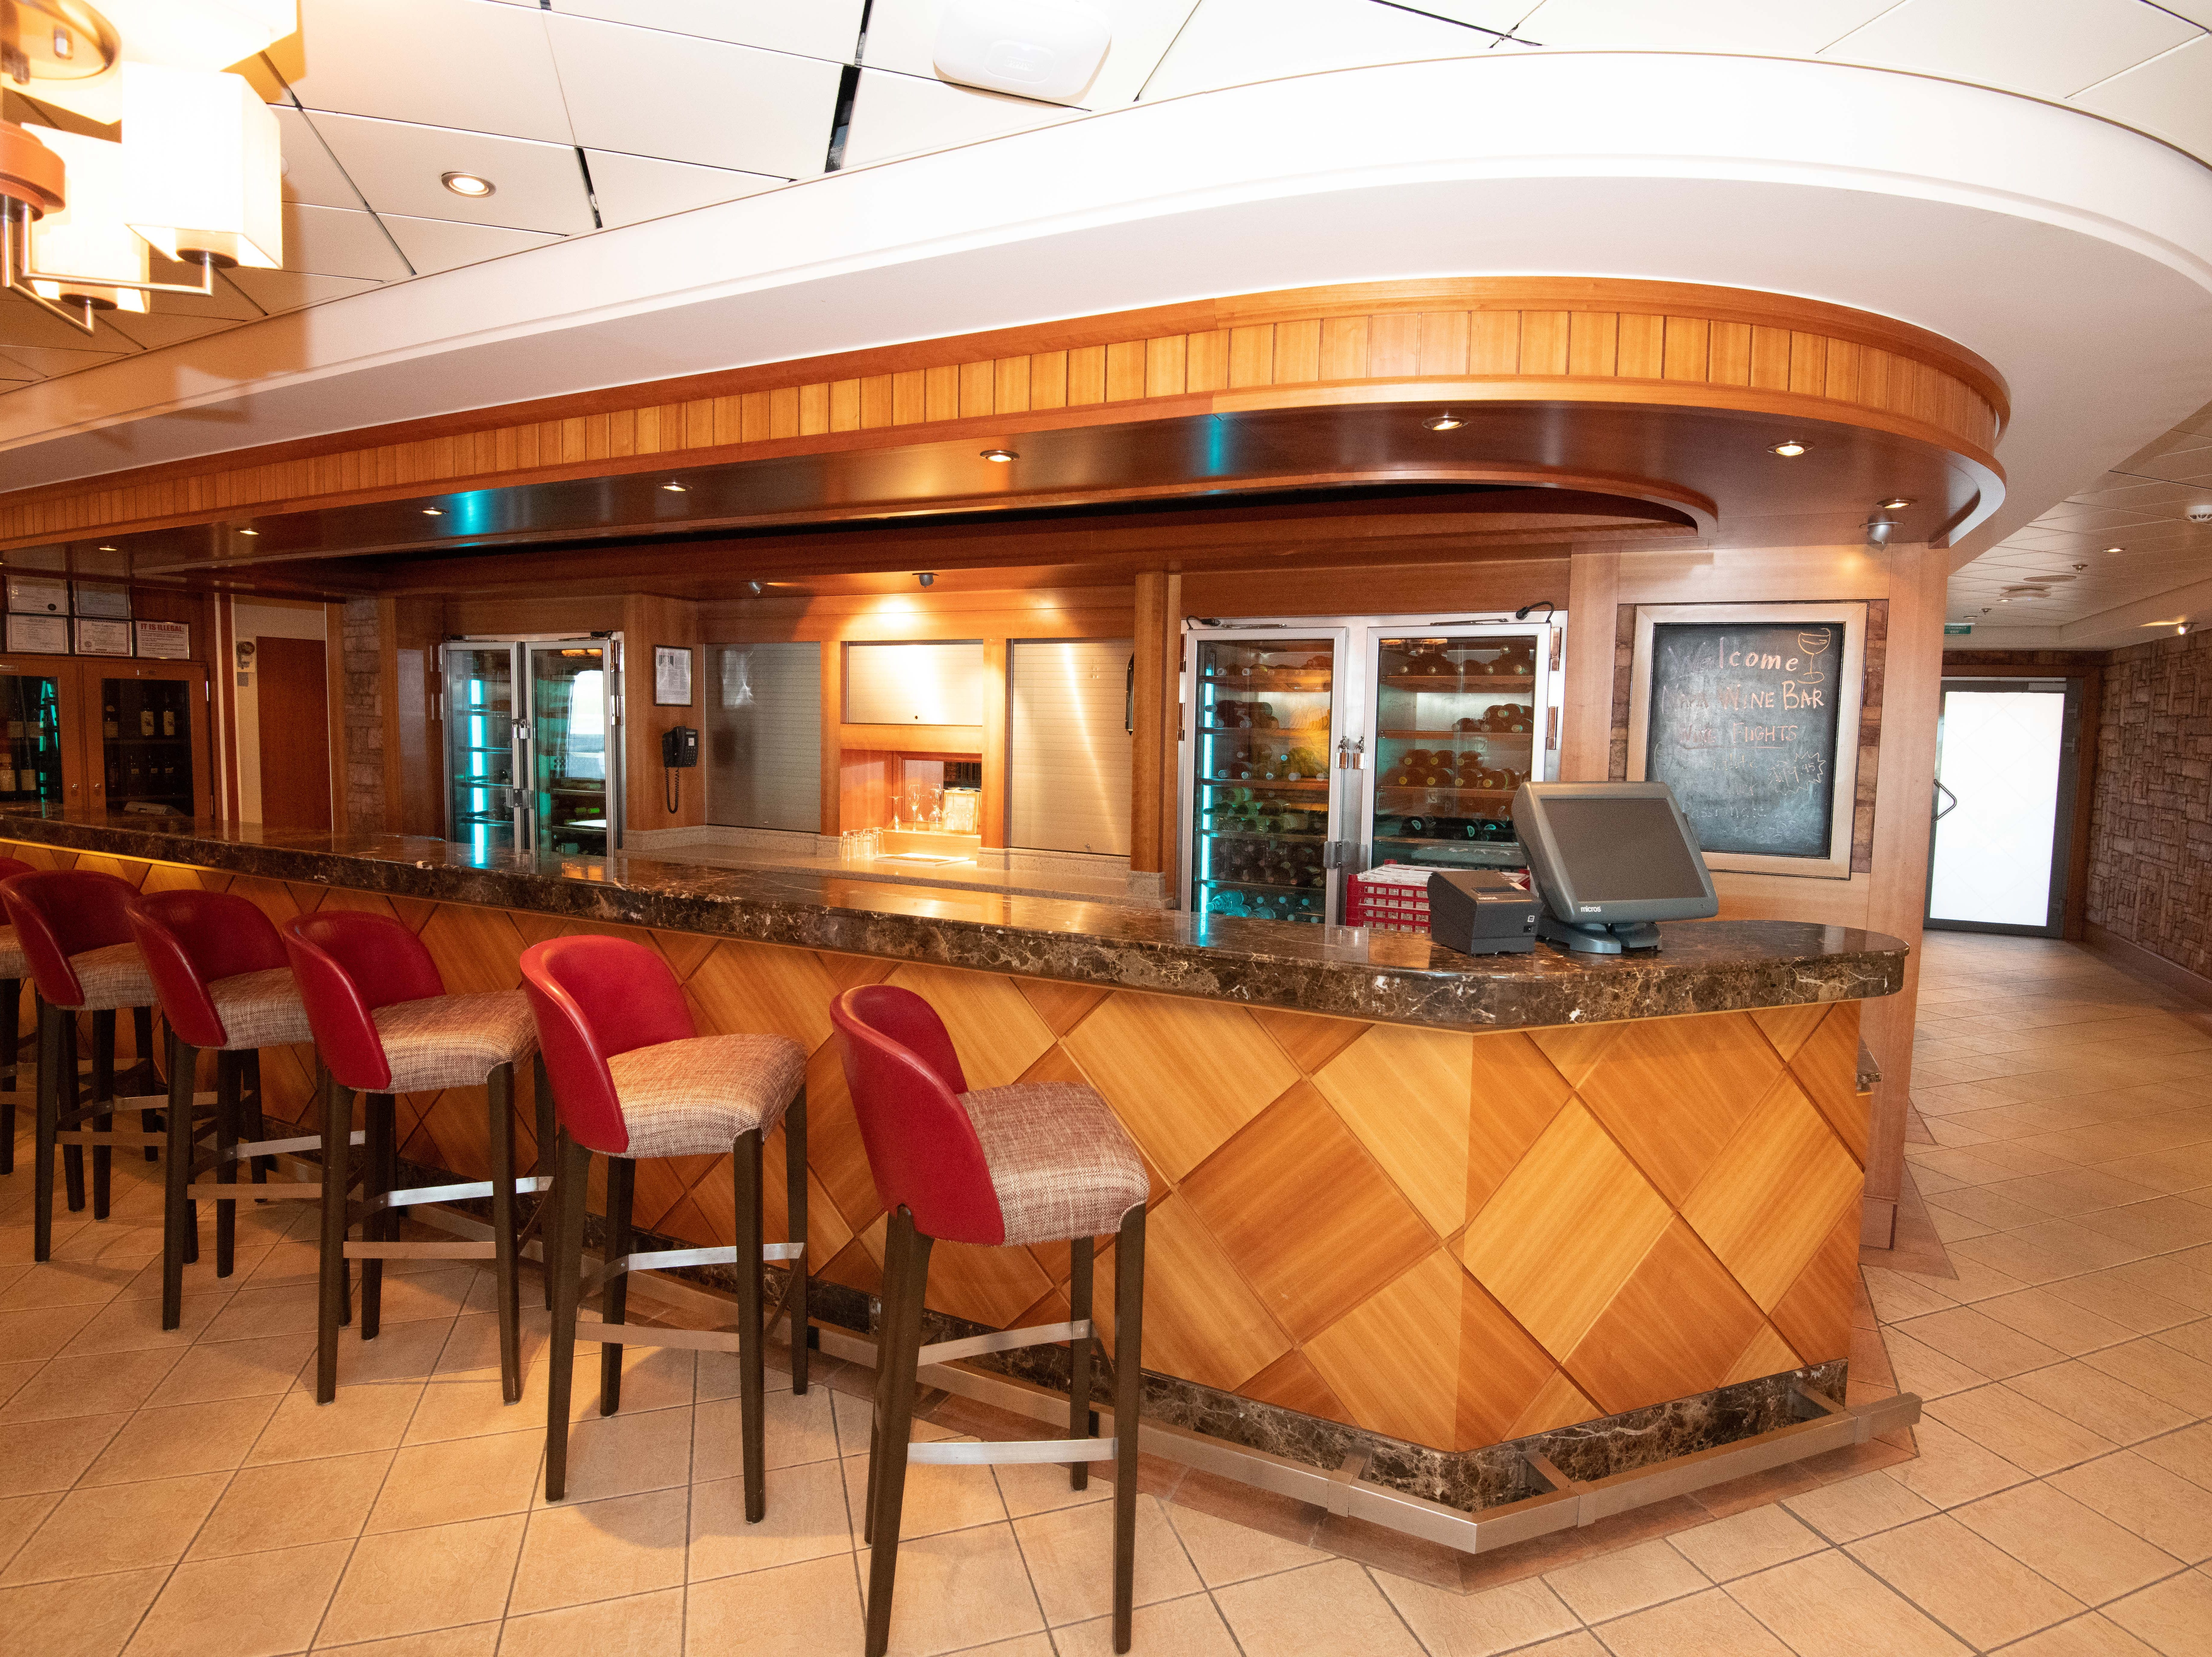 The granite-topped bar at the center of Pride of America's Napa Wine Bar is a popular spot for pre-dinner drinks.